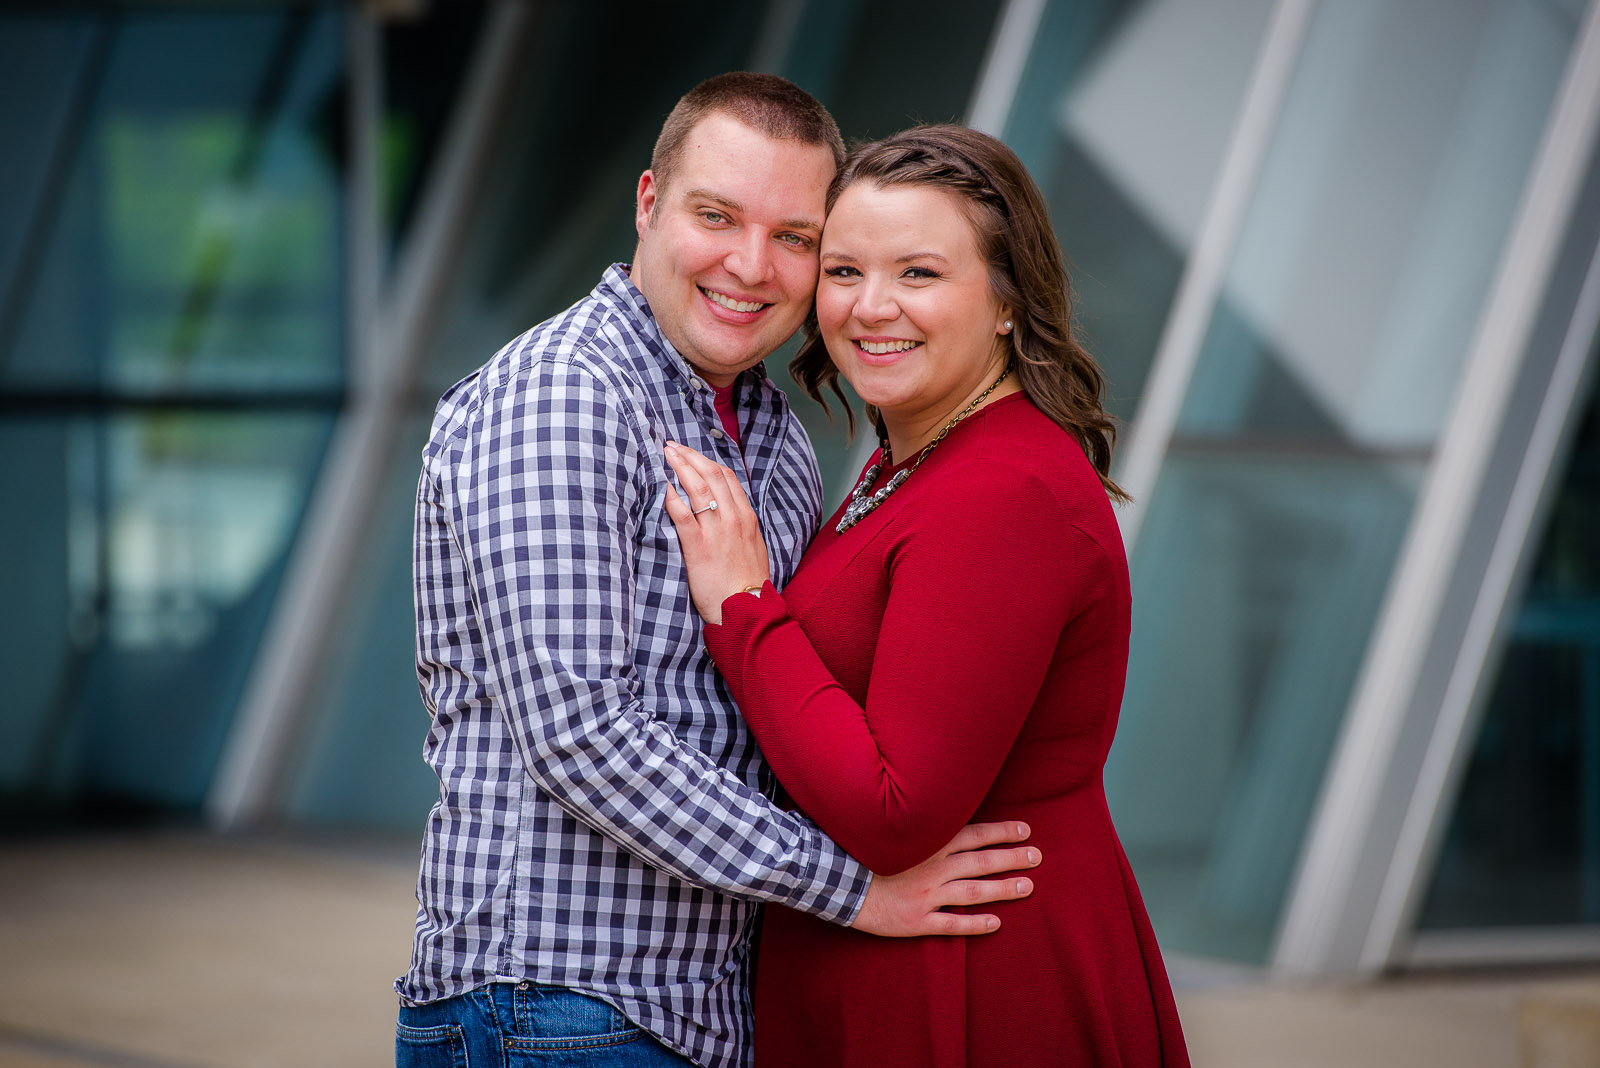 Eric_and_Christy_Photography_Blog_Stacey_Geoff_Engagement-16